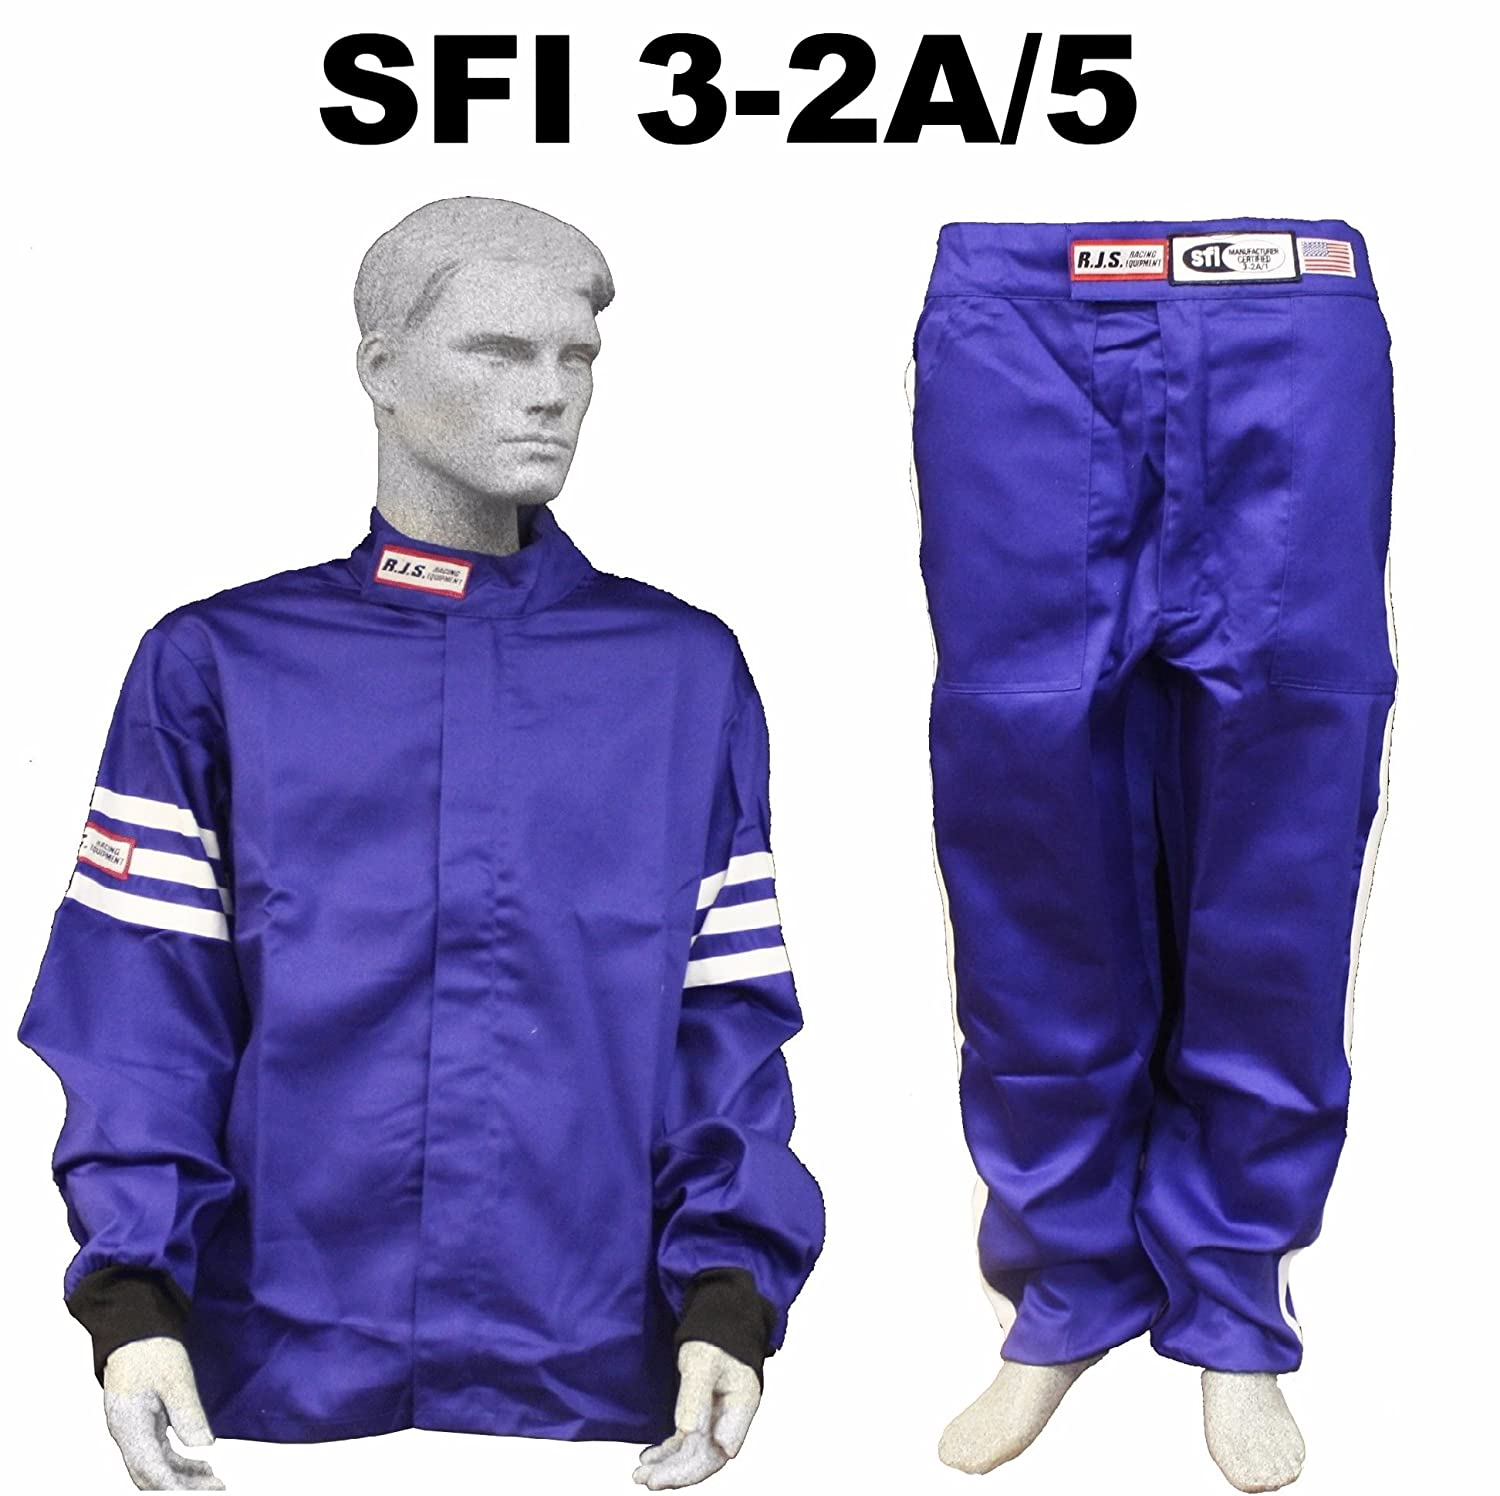 RJS RACING ADULT SFI 3-2A//1 CLASSIC ADULT SMALL FIRE SUIT PANTS YELLOW